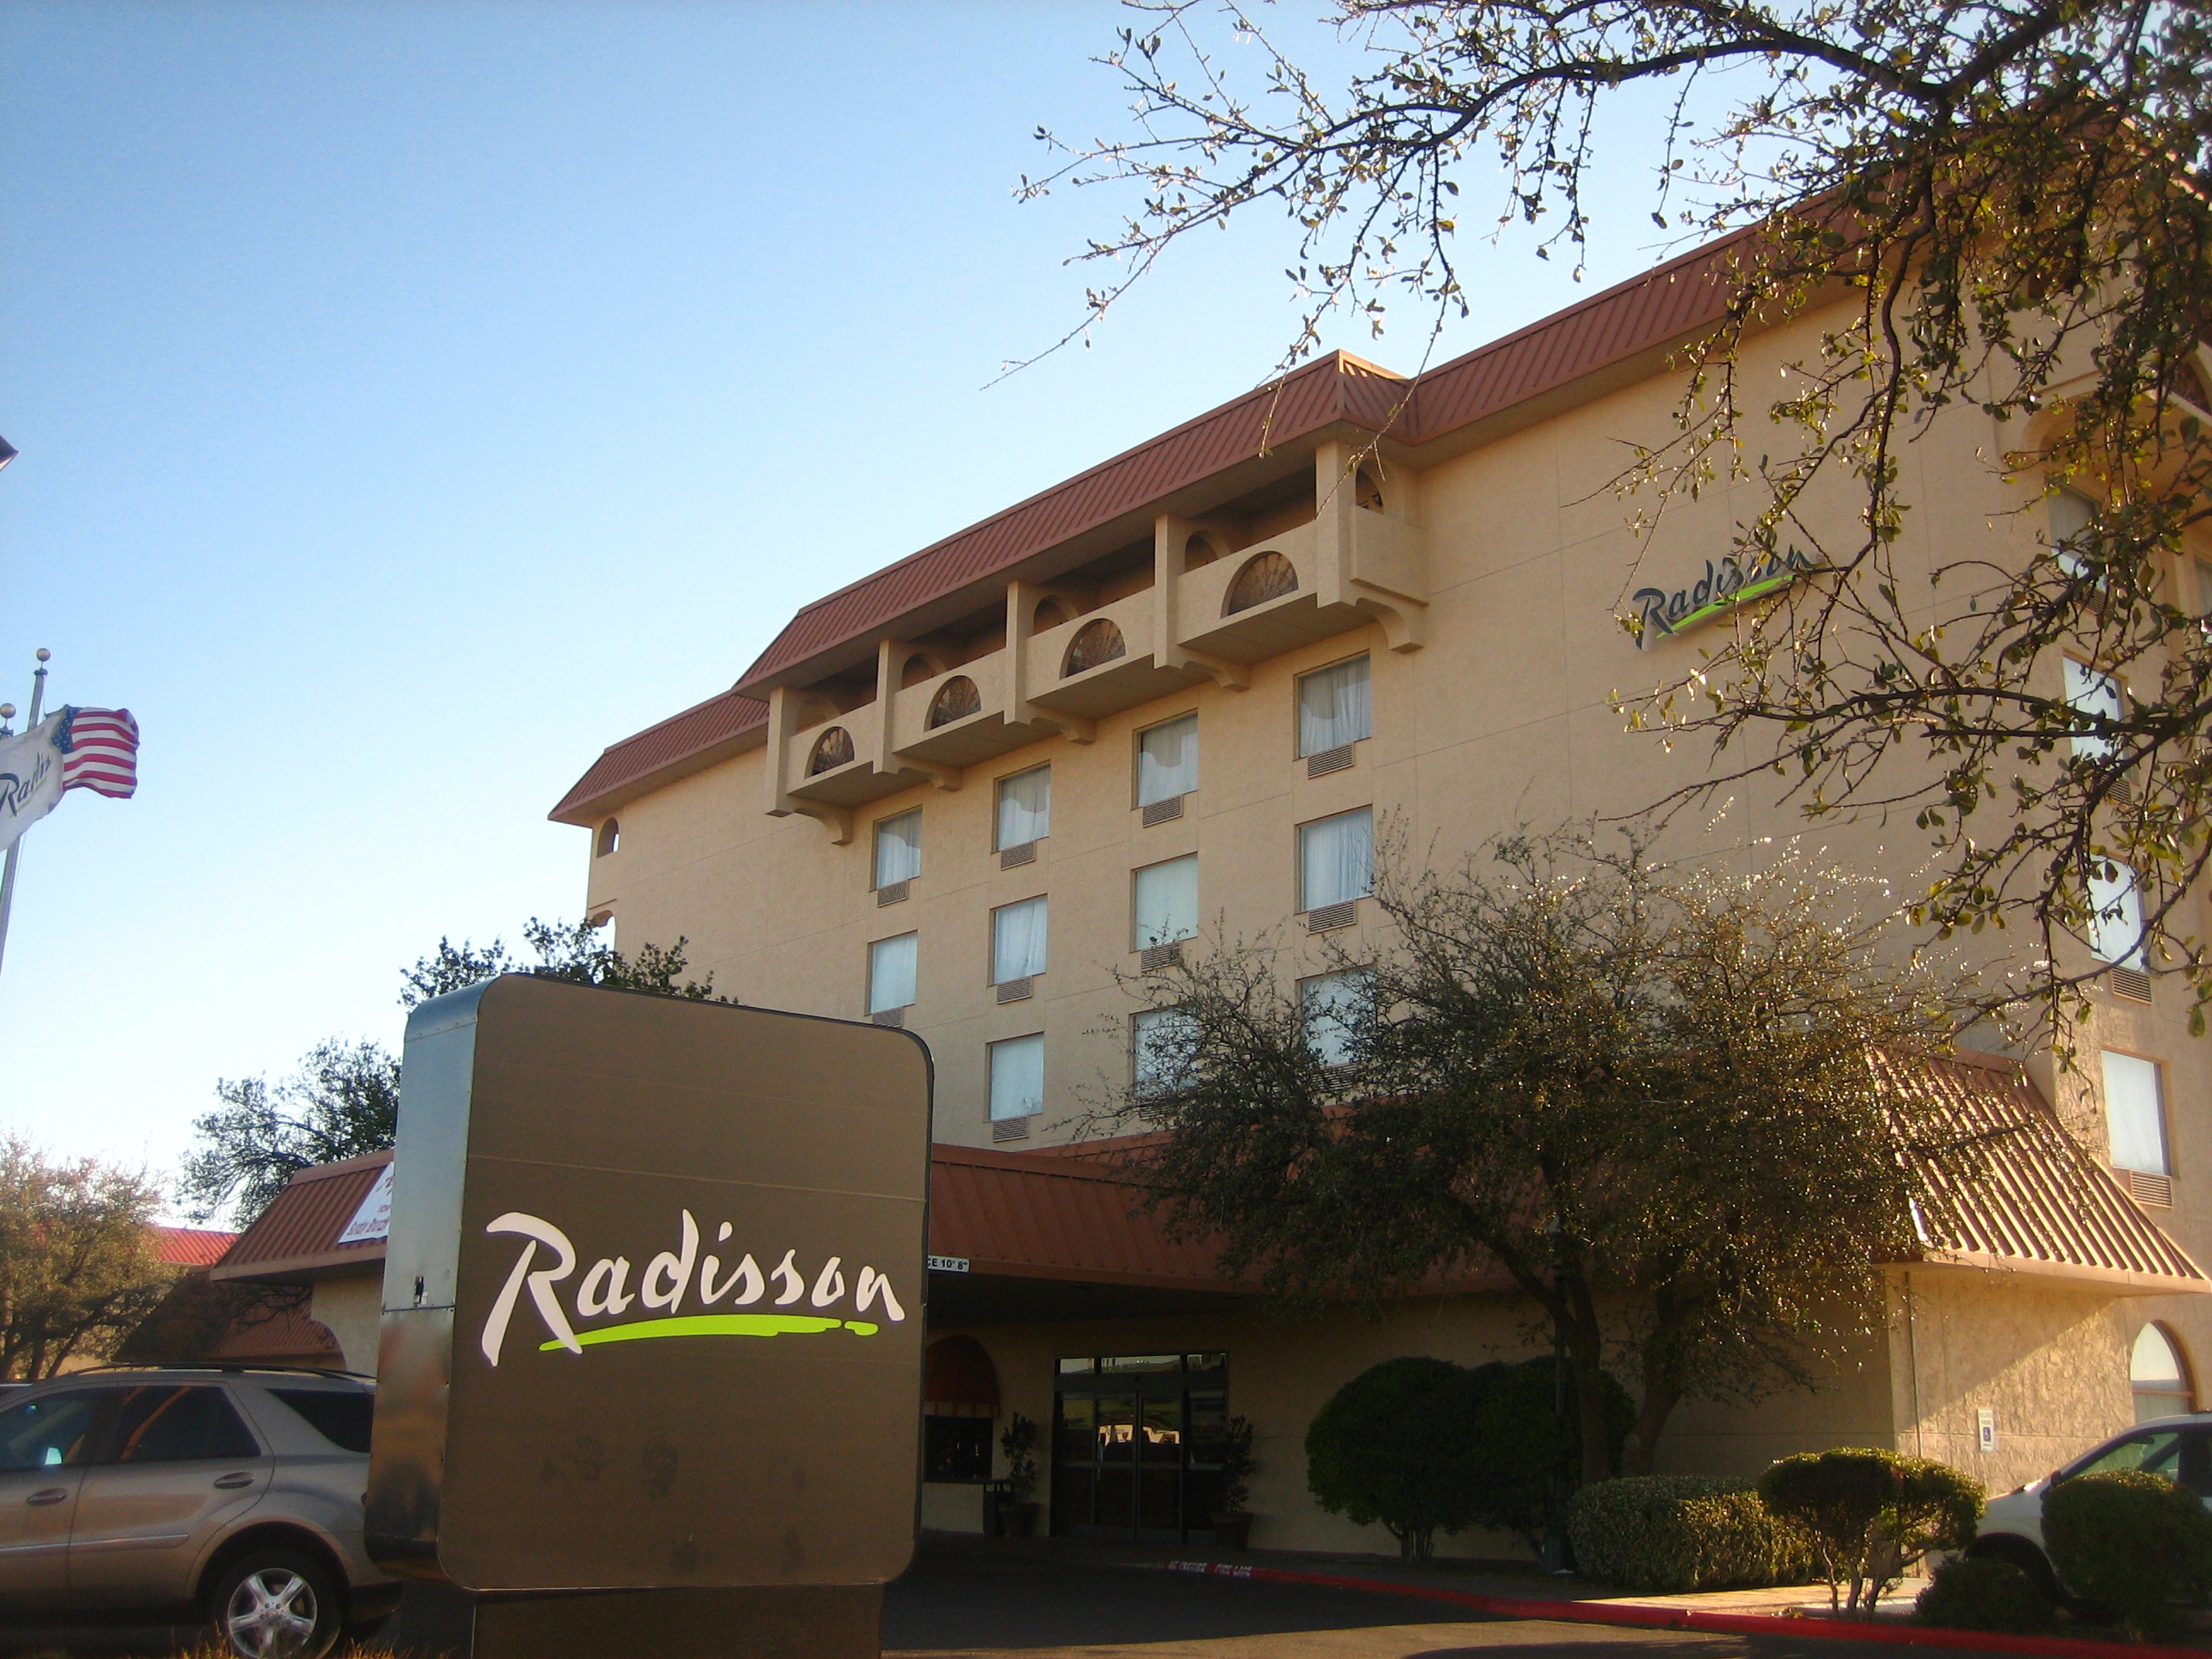 file radisson hotel in lubbock tx img 0196 jpg wikipedia. Black Bedroom Furniture Sets. Home Design Ideas